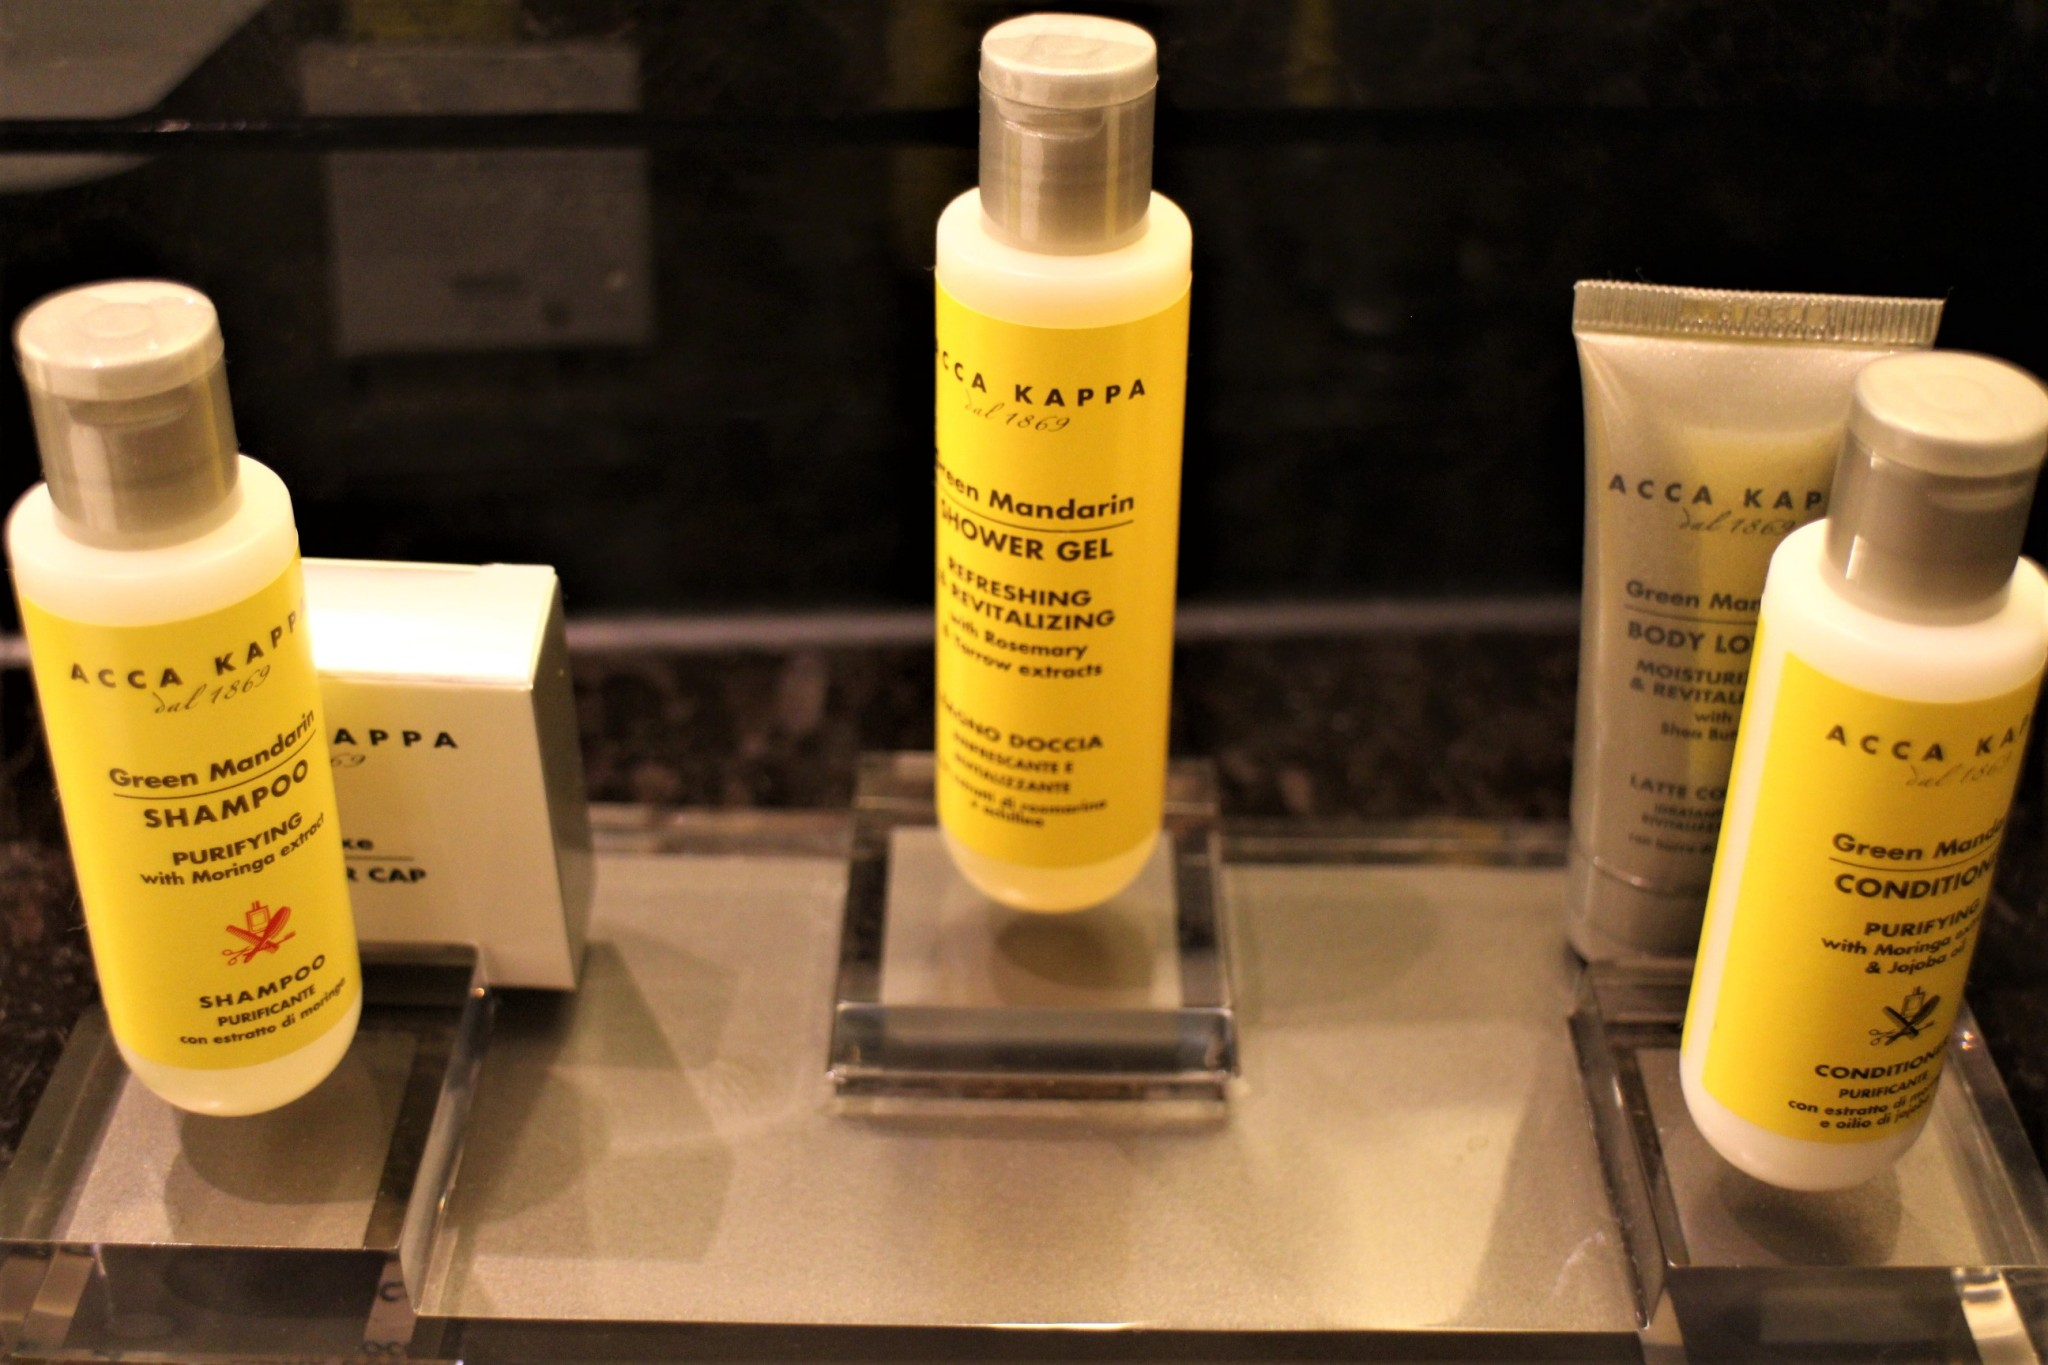 Berlin Marriott Bathroom Products